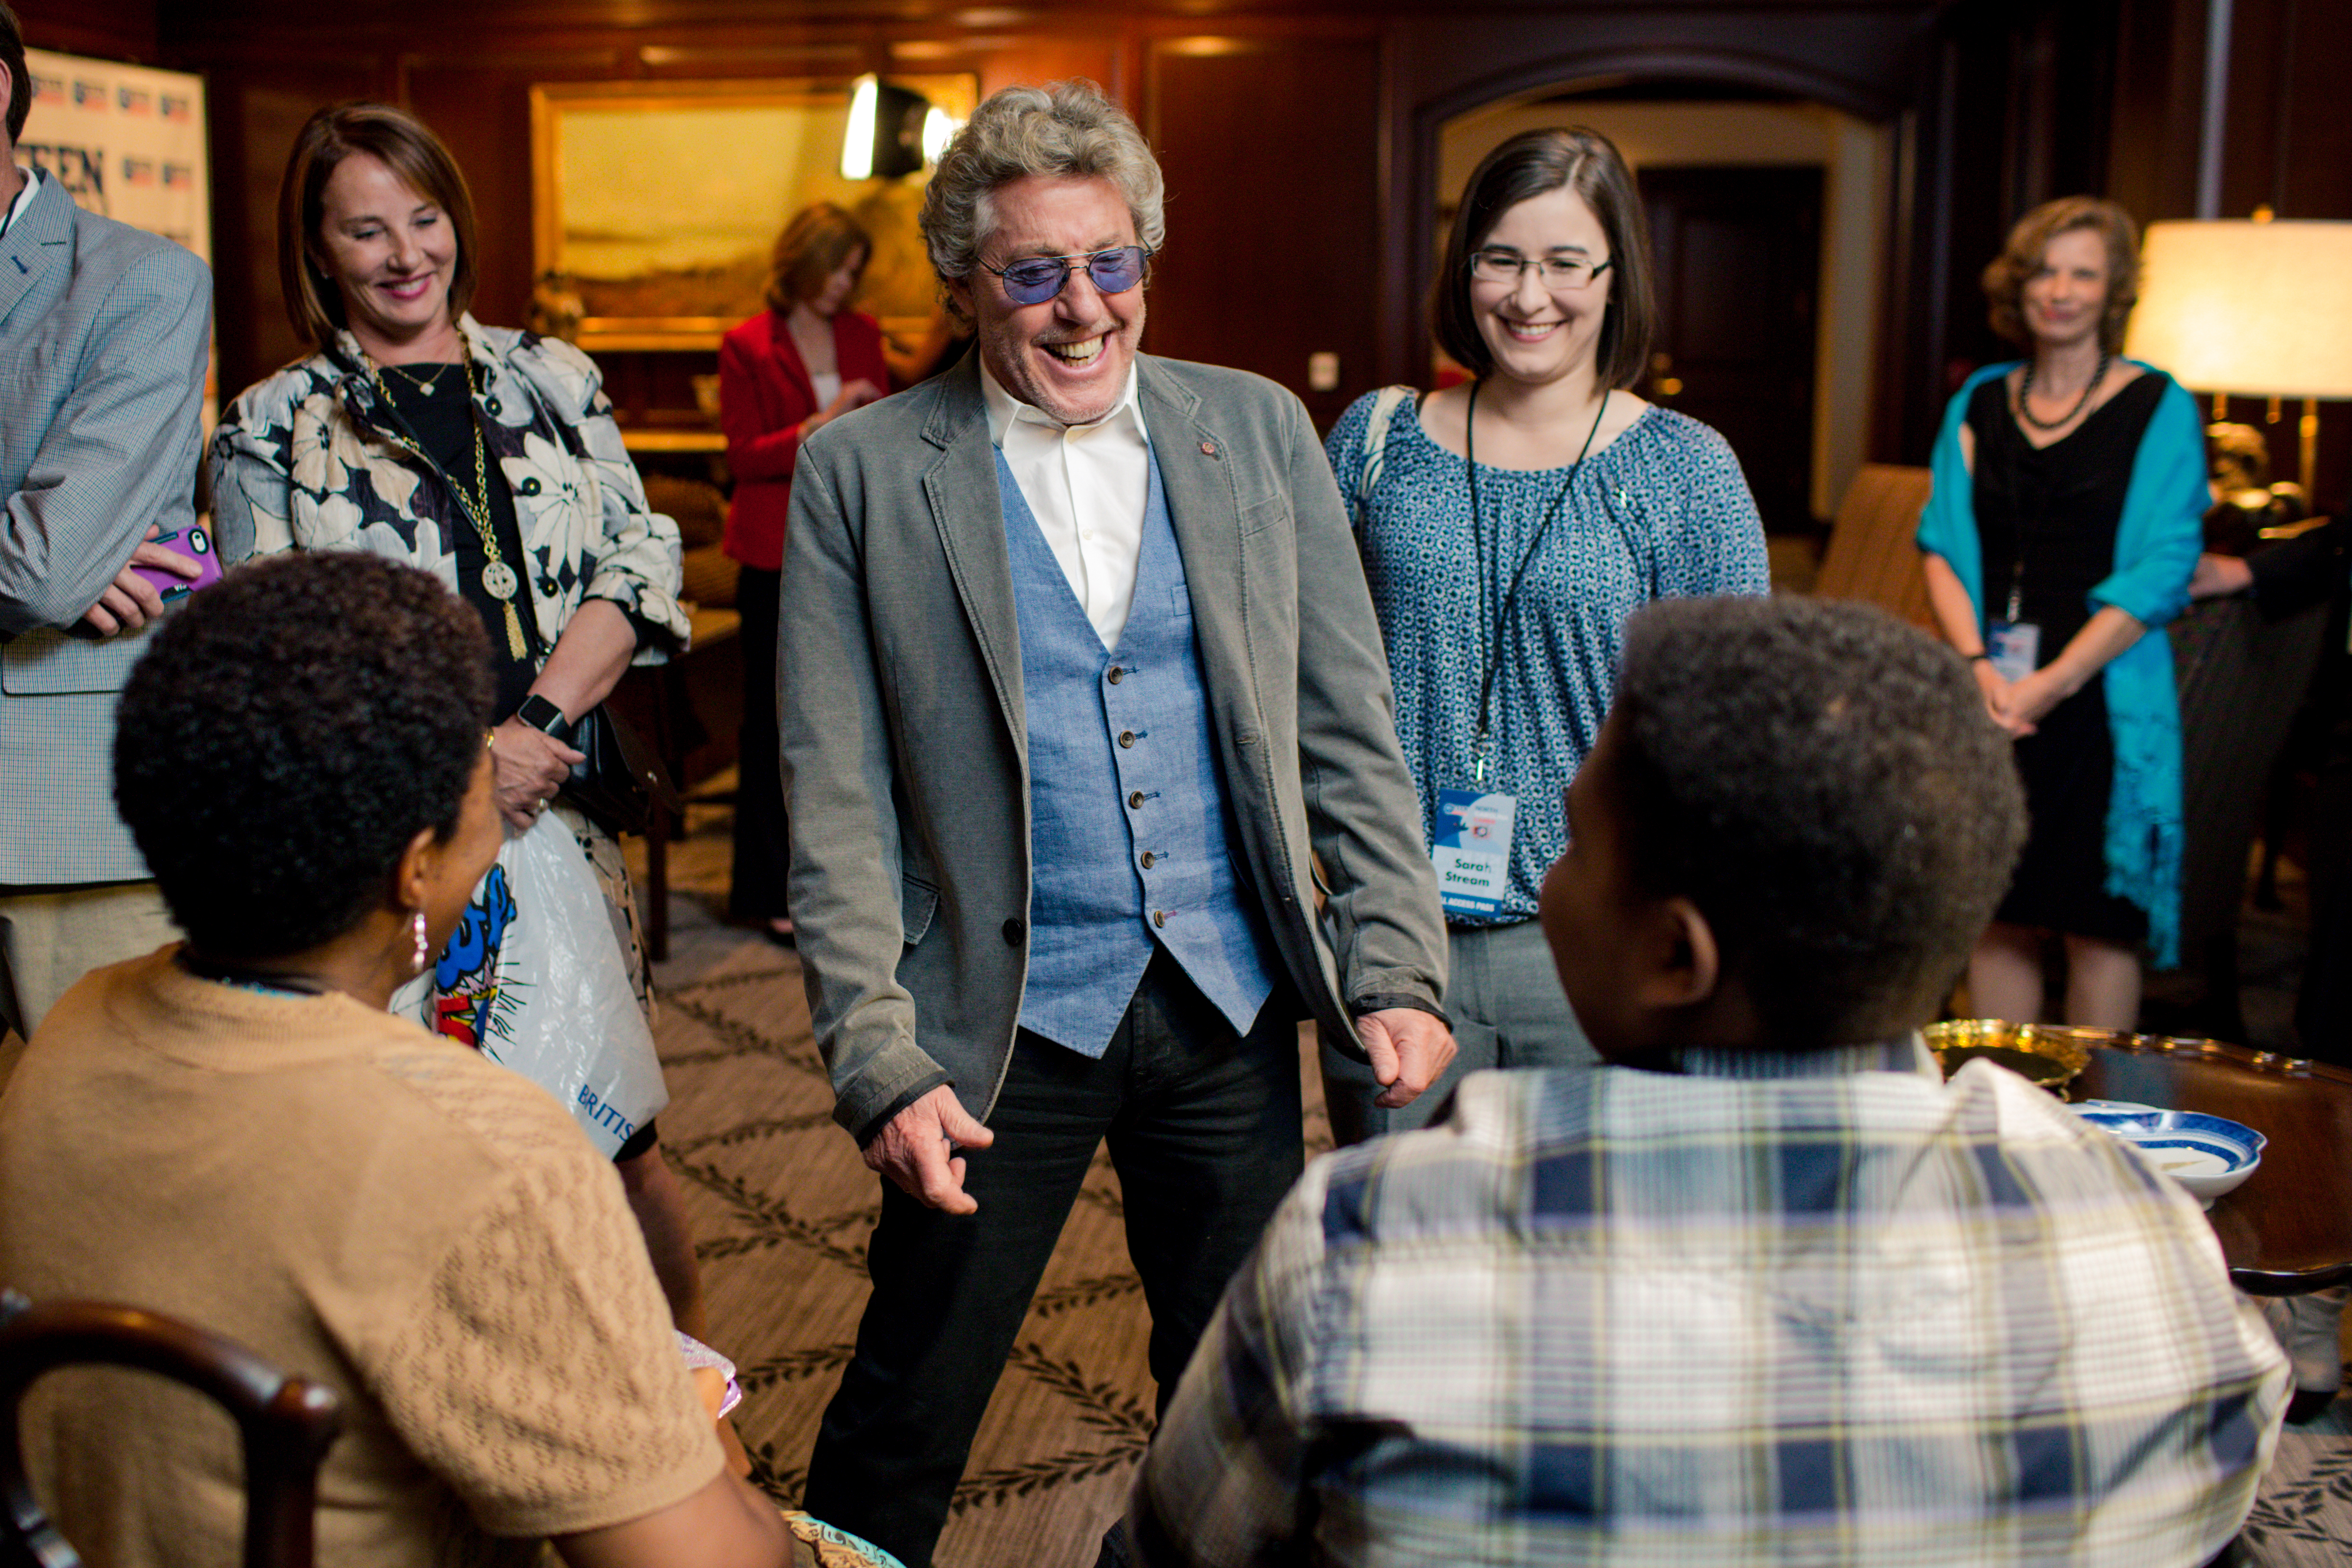 Roger Daltrey Meets with Teenage Guests